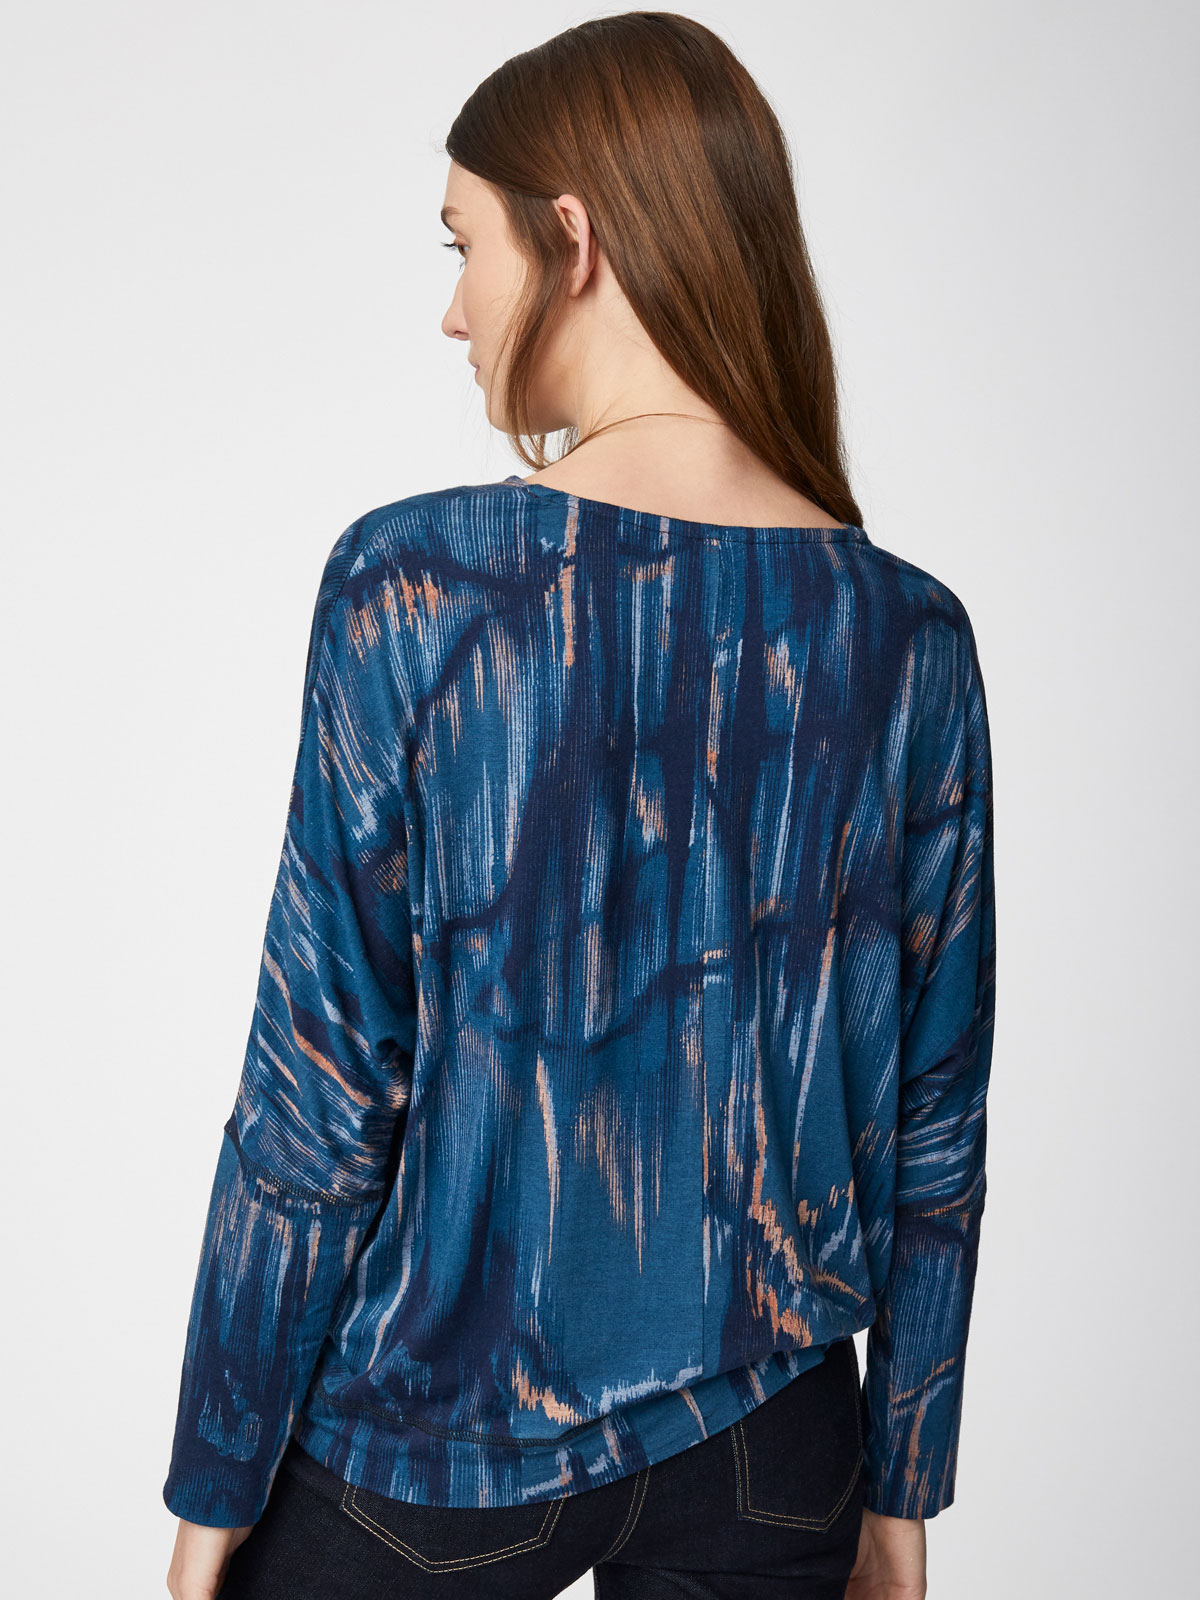 SALE WAS £37 NOW £19 Thought Ammonite Top